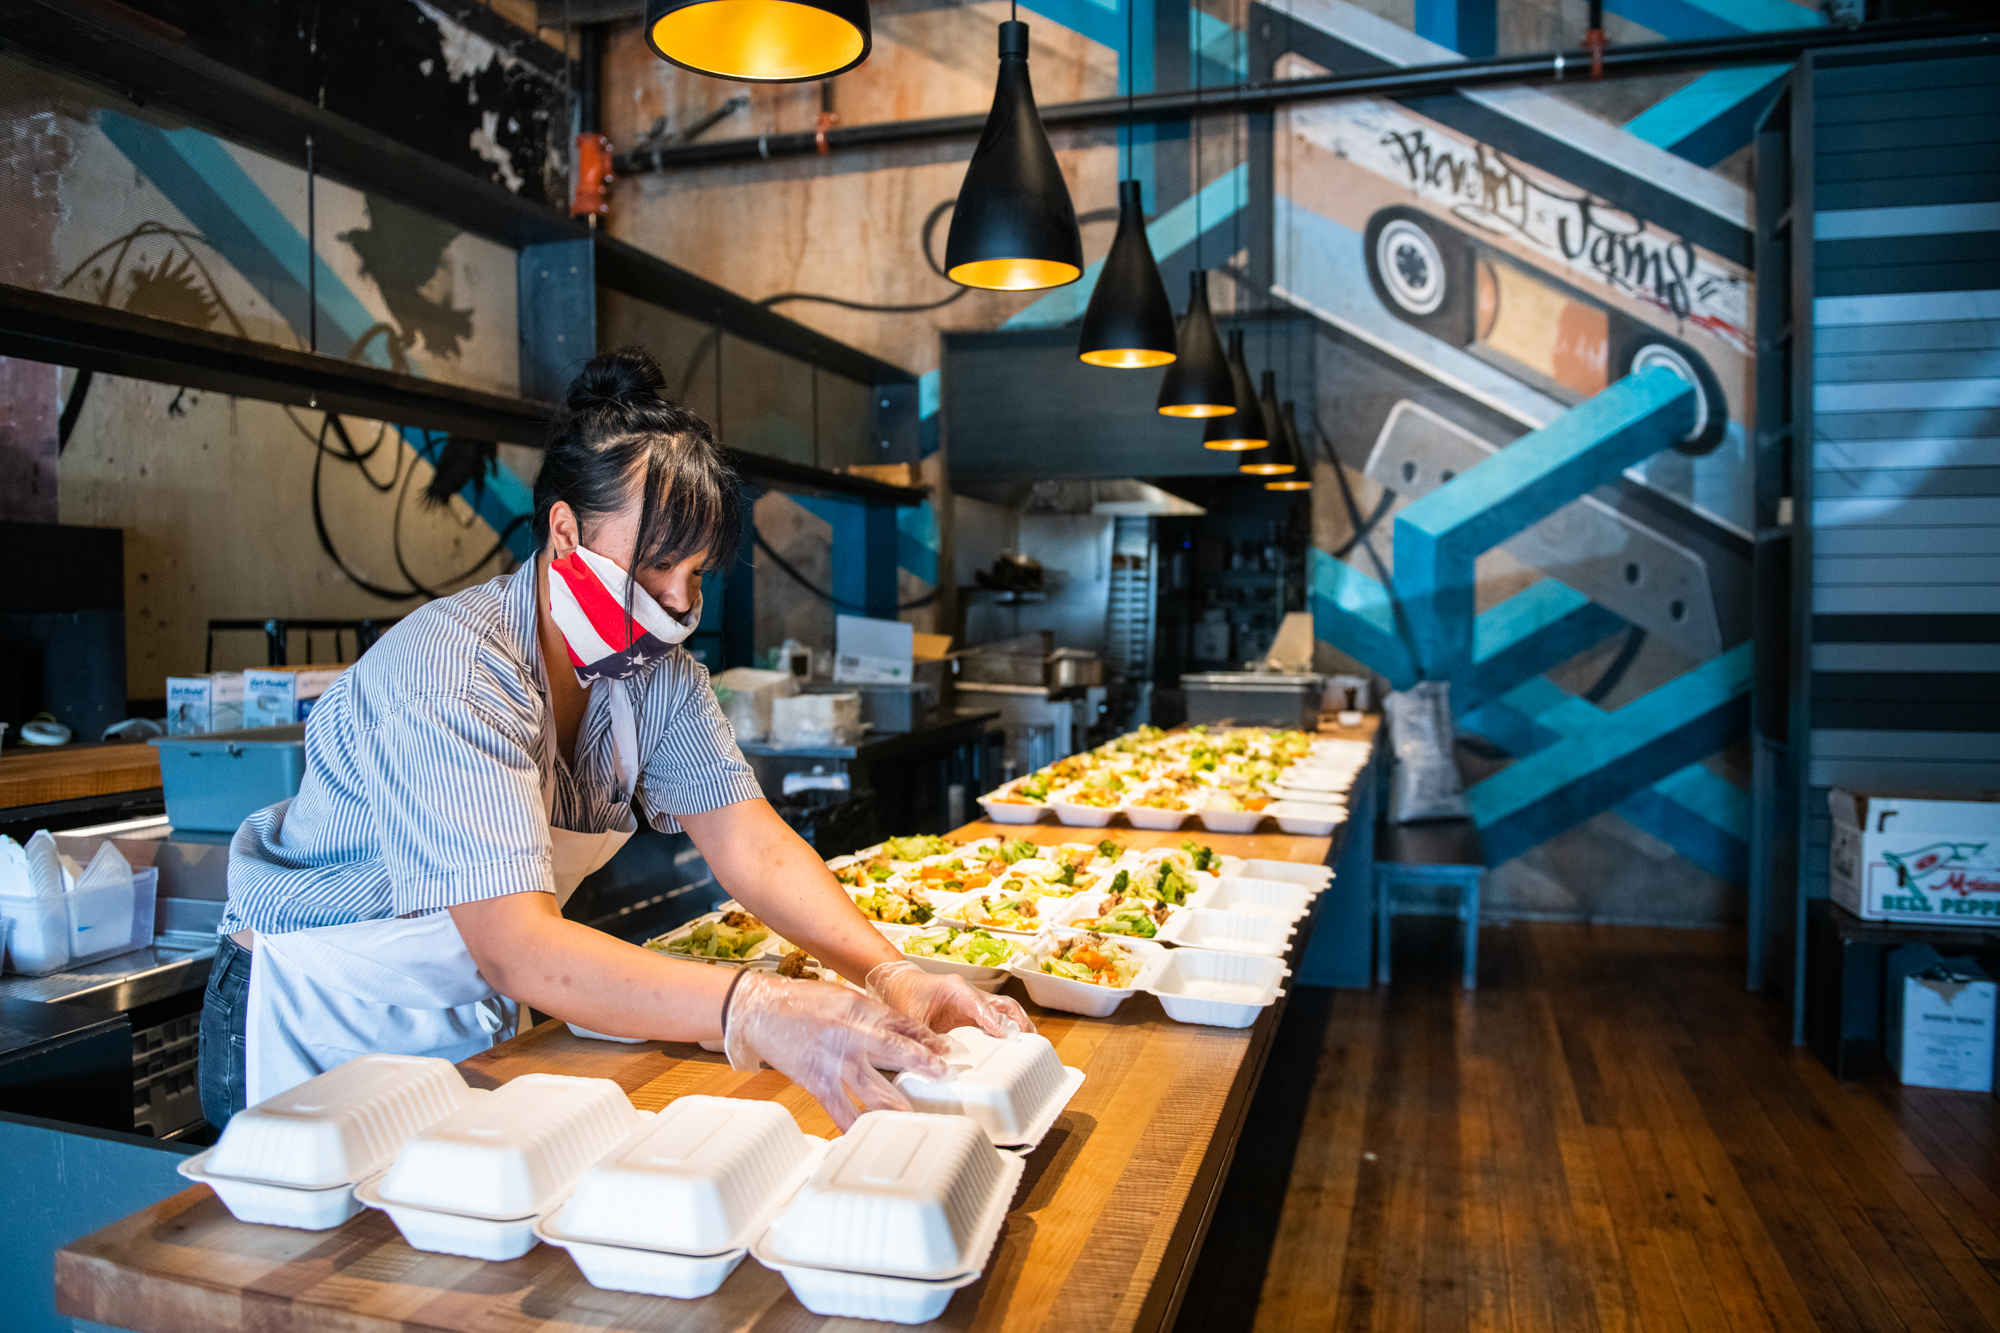 Diane Lam, wearing an American flag makeshift face mask and clear plastic gloves, prepares boxes of takeout to deliver to a homeless shelter. Standing in the empty dining room of Revelry, Lam pushes together the tables to accommodate the several boxes of food.